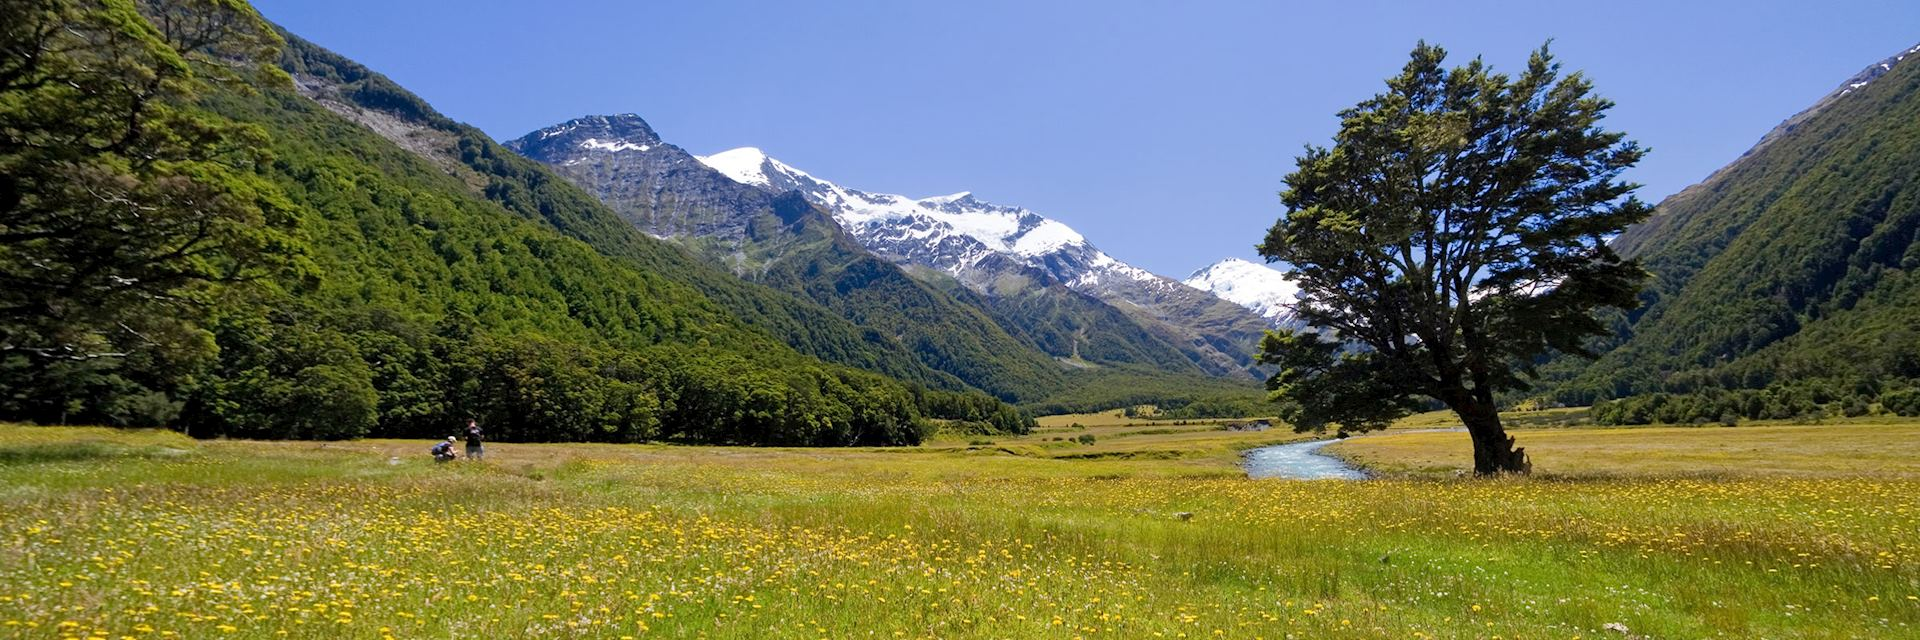 Mount Aspiring Nation Park